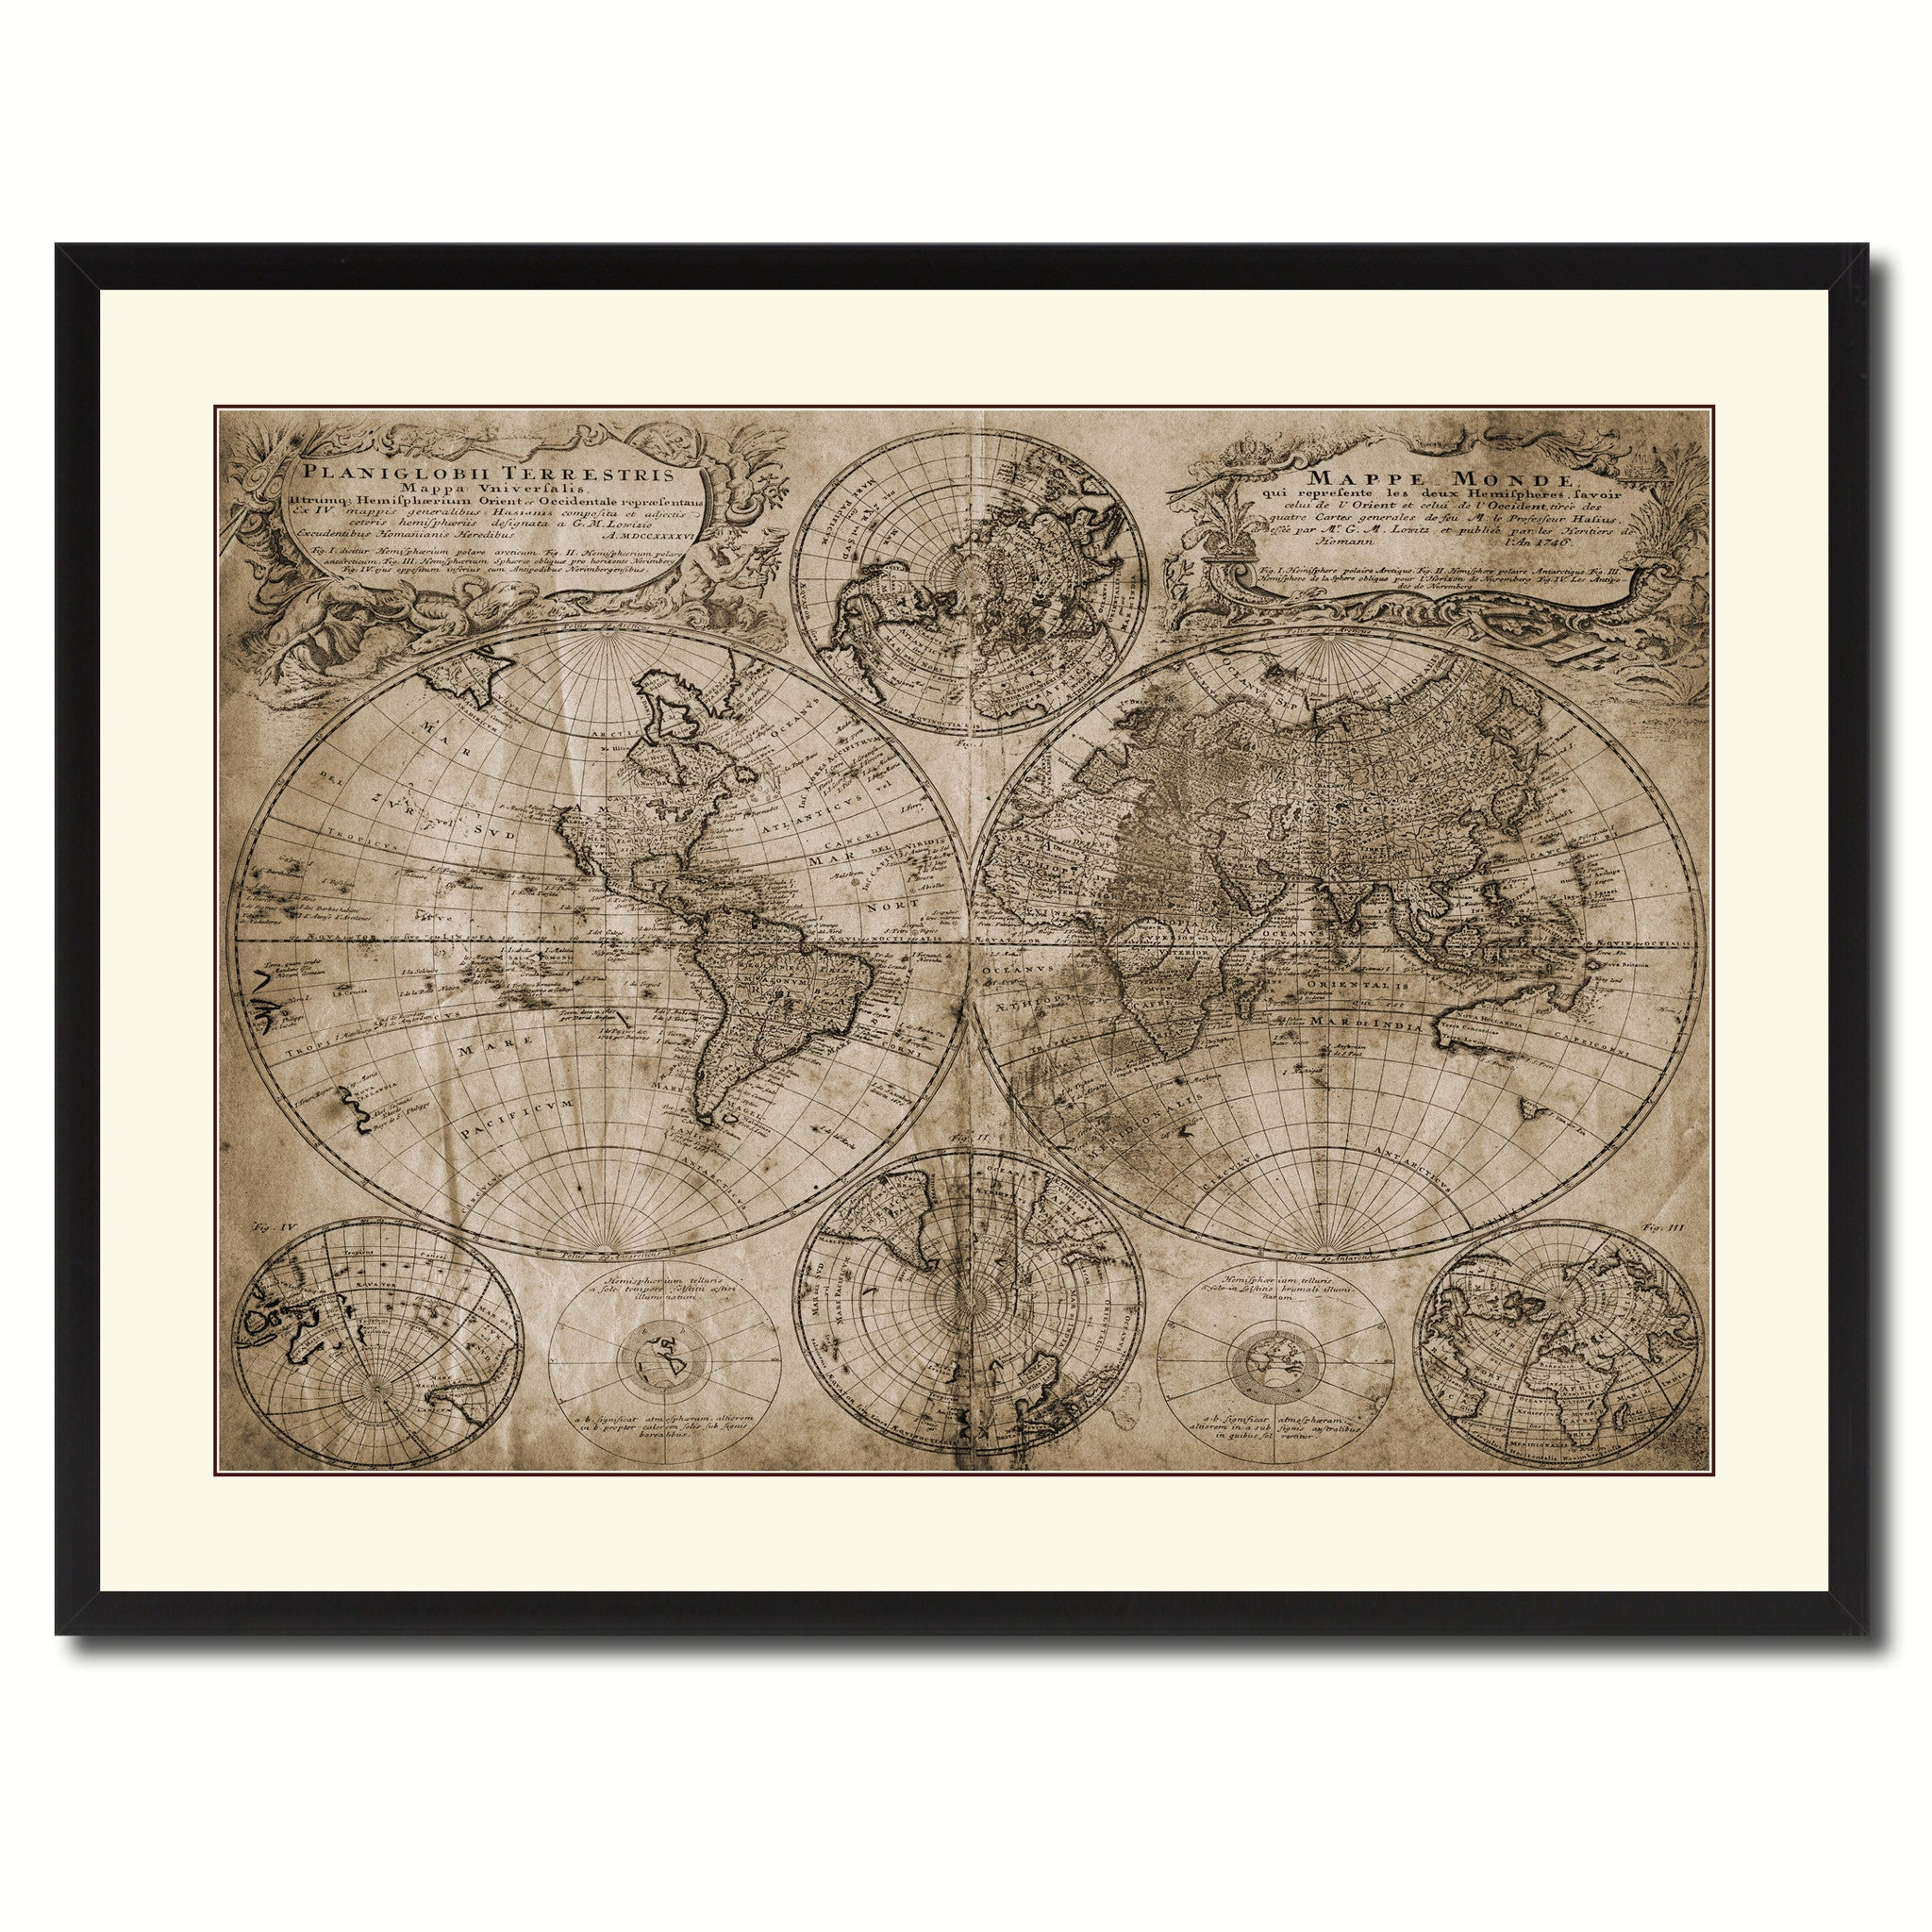 world vintage sepia map canvas print picture frame gifts home decor wall art de ebay. Black Bedroom Furniture Sets. Home Design Ideas